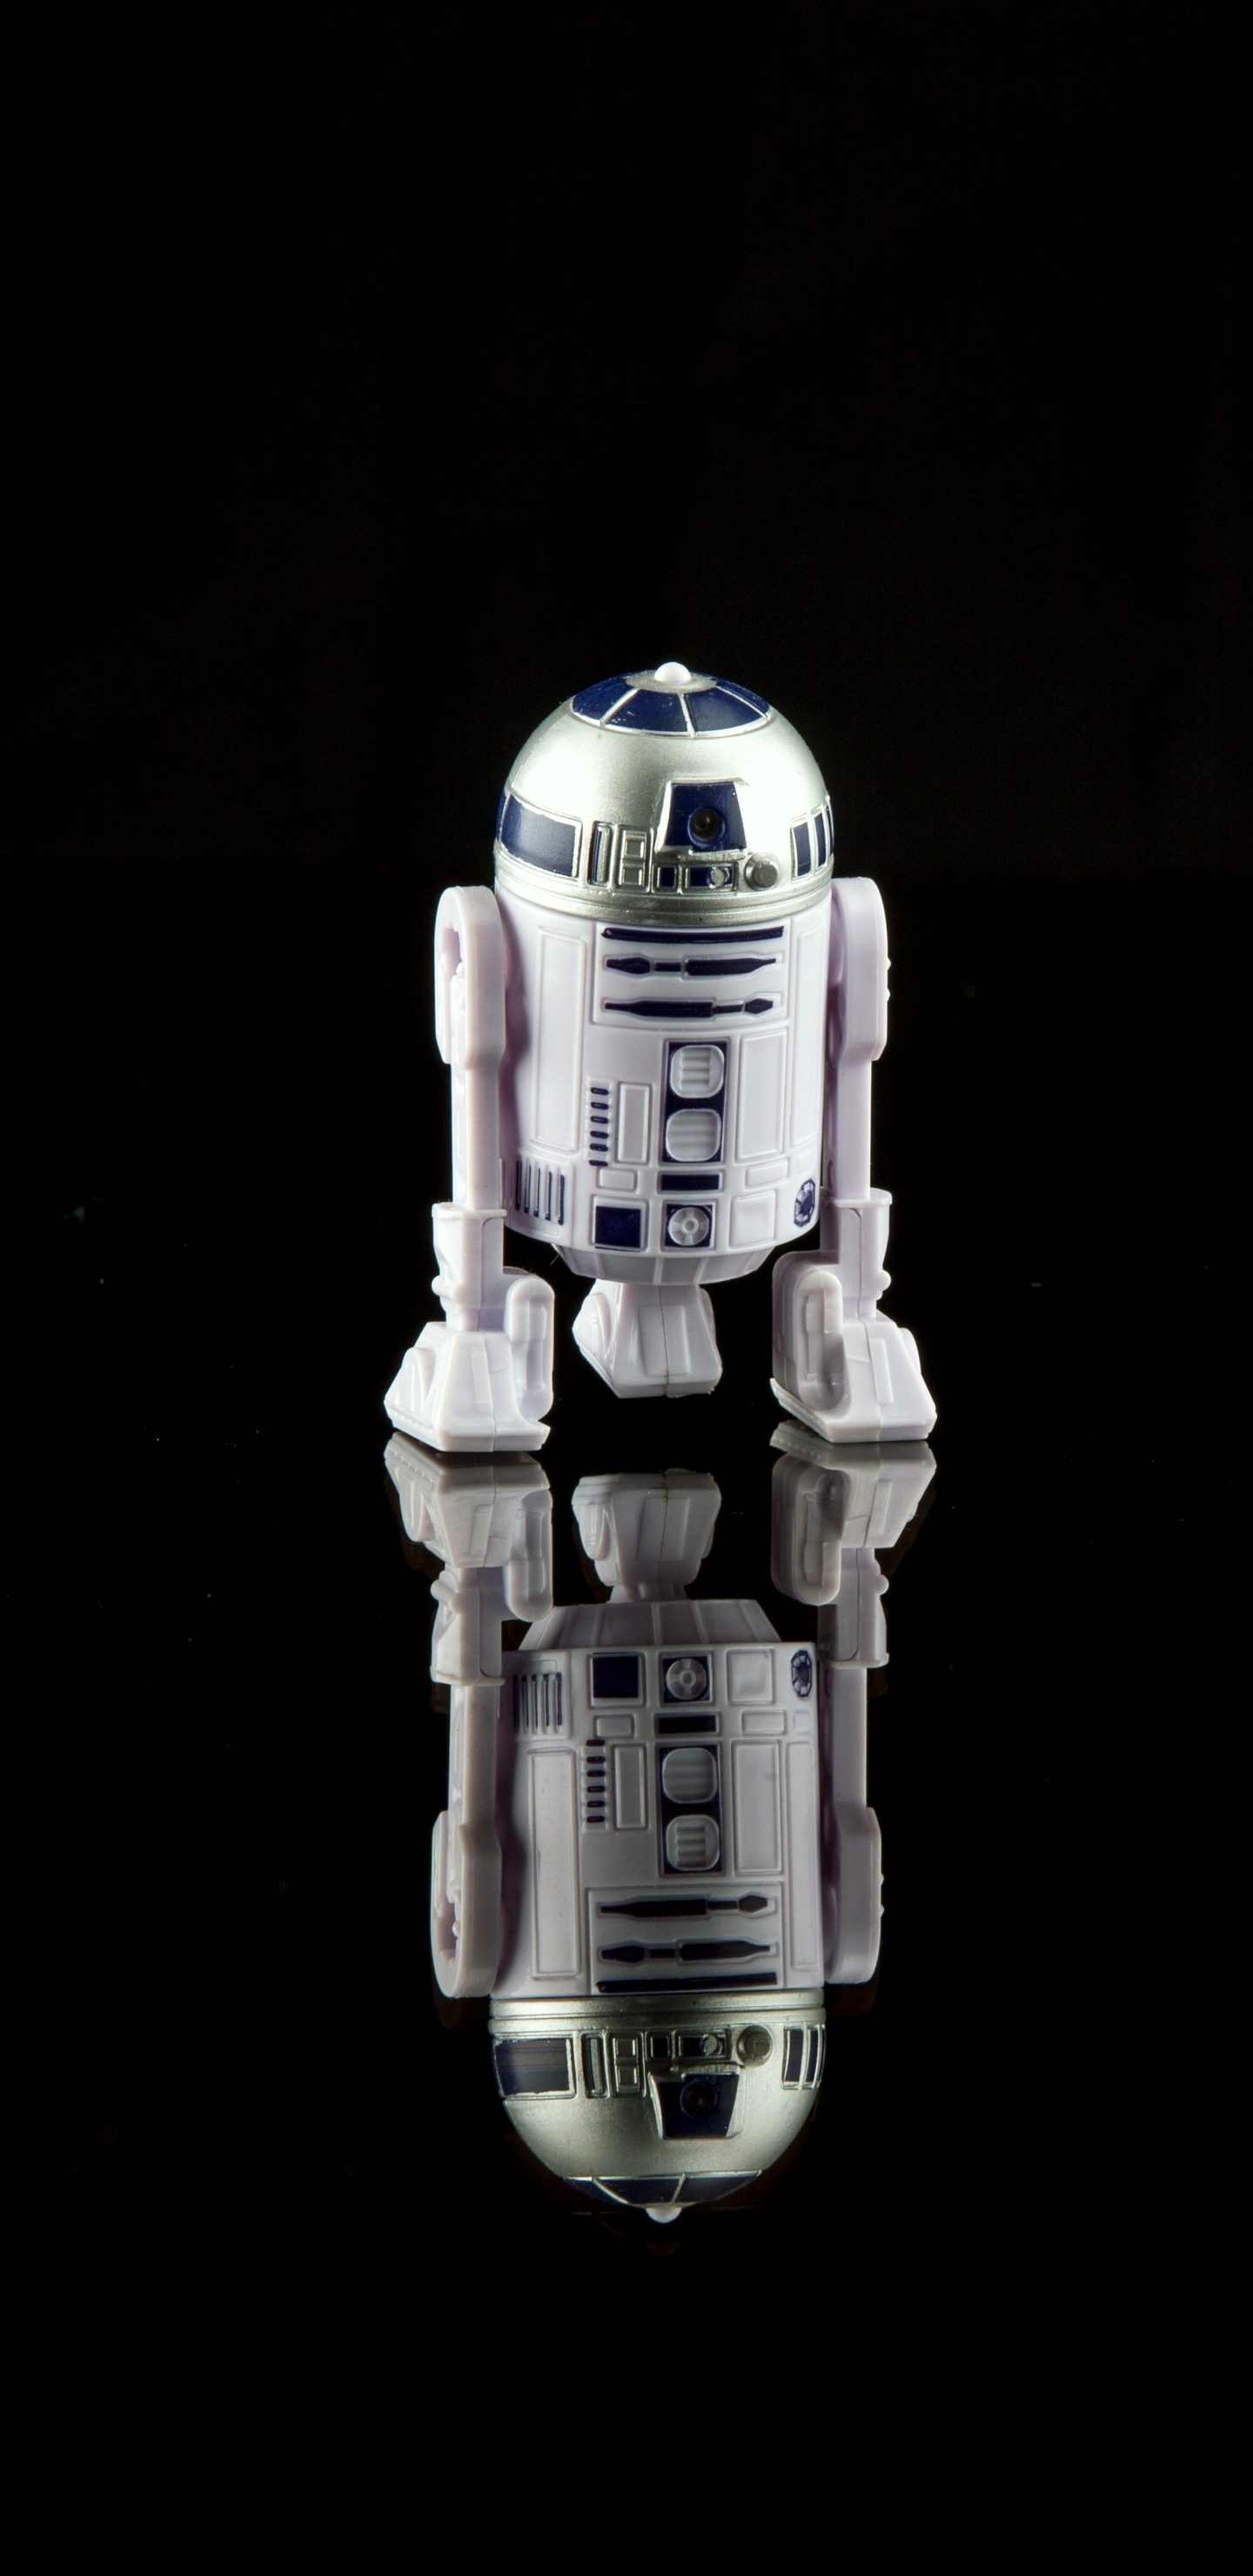 R2 D2 Star Wars Toy (Samsung Galaxy Note 9,8, S9,S8,S8+ QHD)